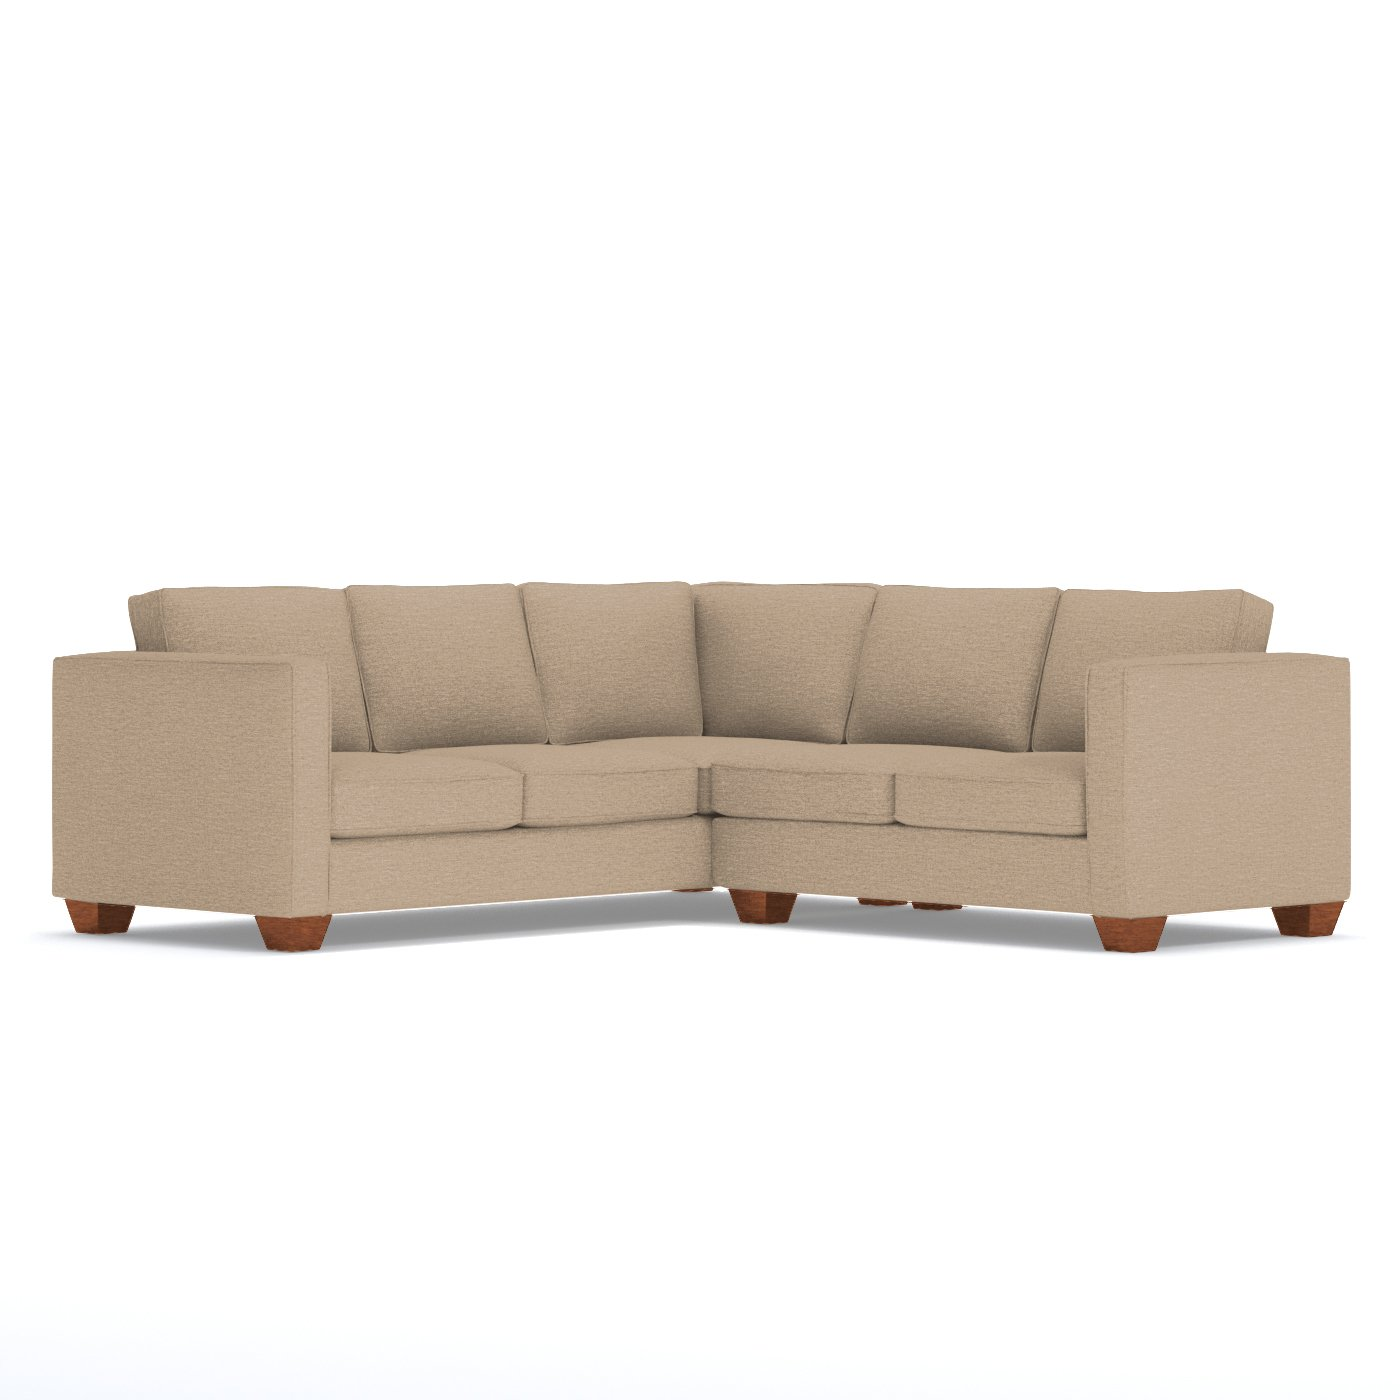 Catalina 2pc L-Sectional Sofa  sc 1 st  Apt2B : l sectional couch - Sectionals, Sofas & Couches